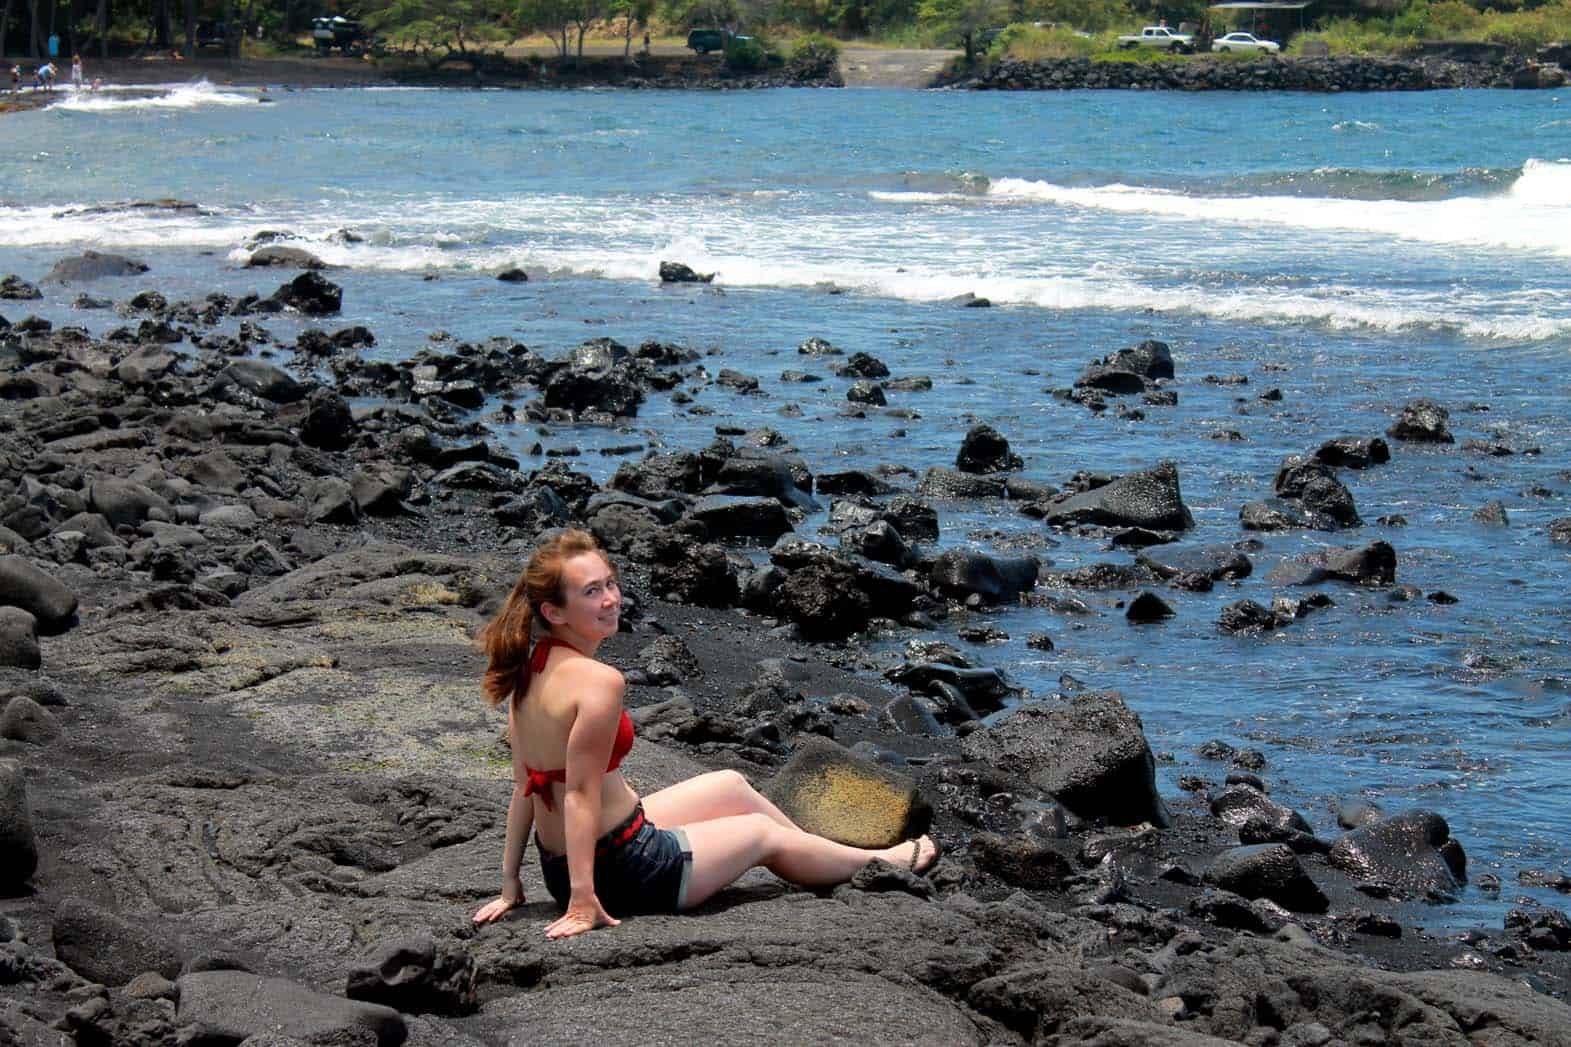 Punaluu Beach is the best thing to see during your first trip to Hawaii